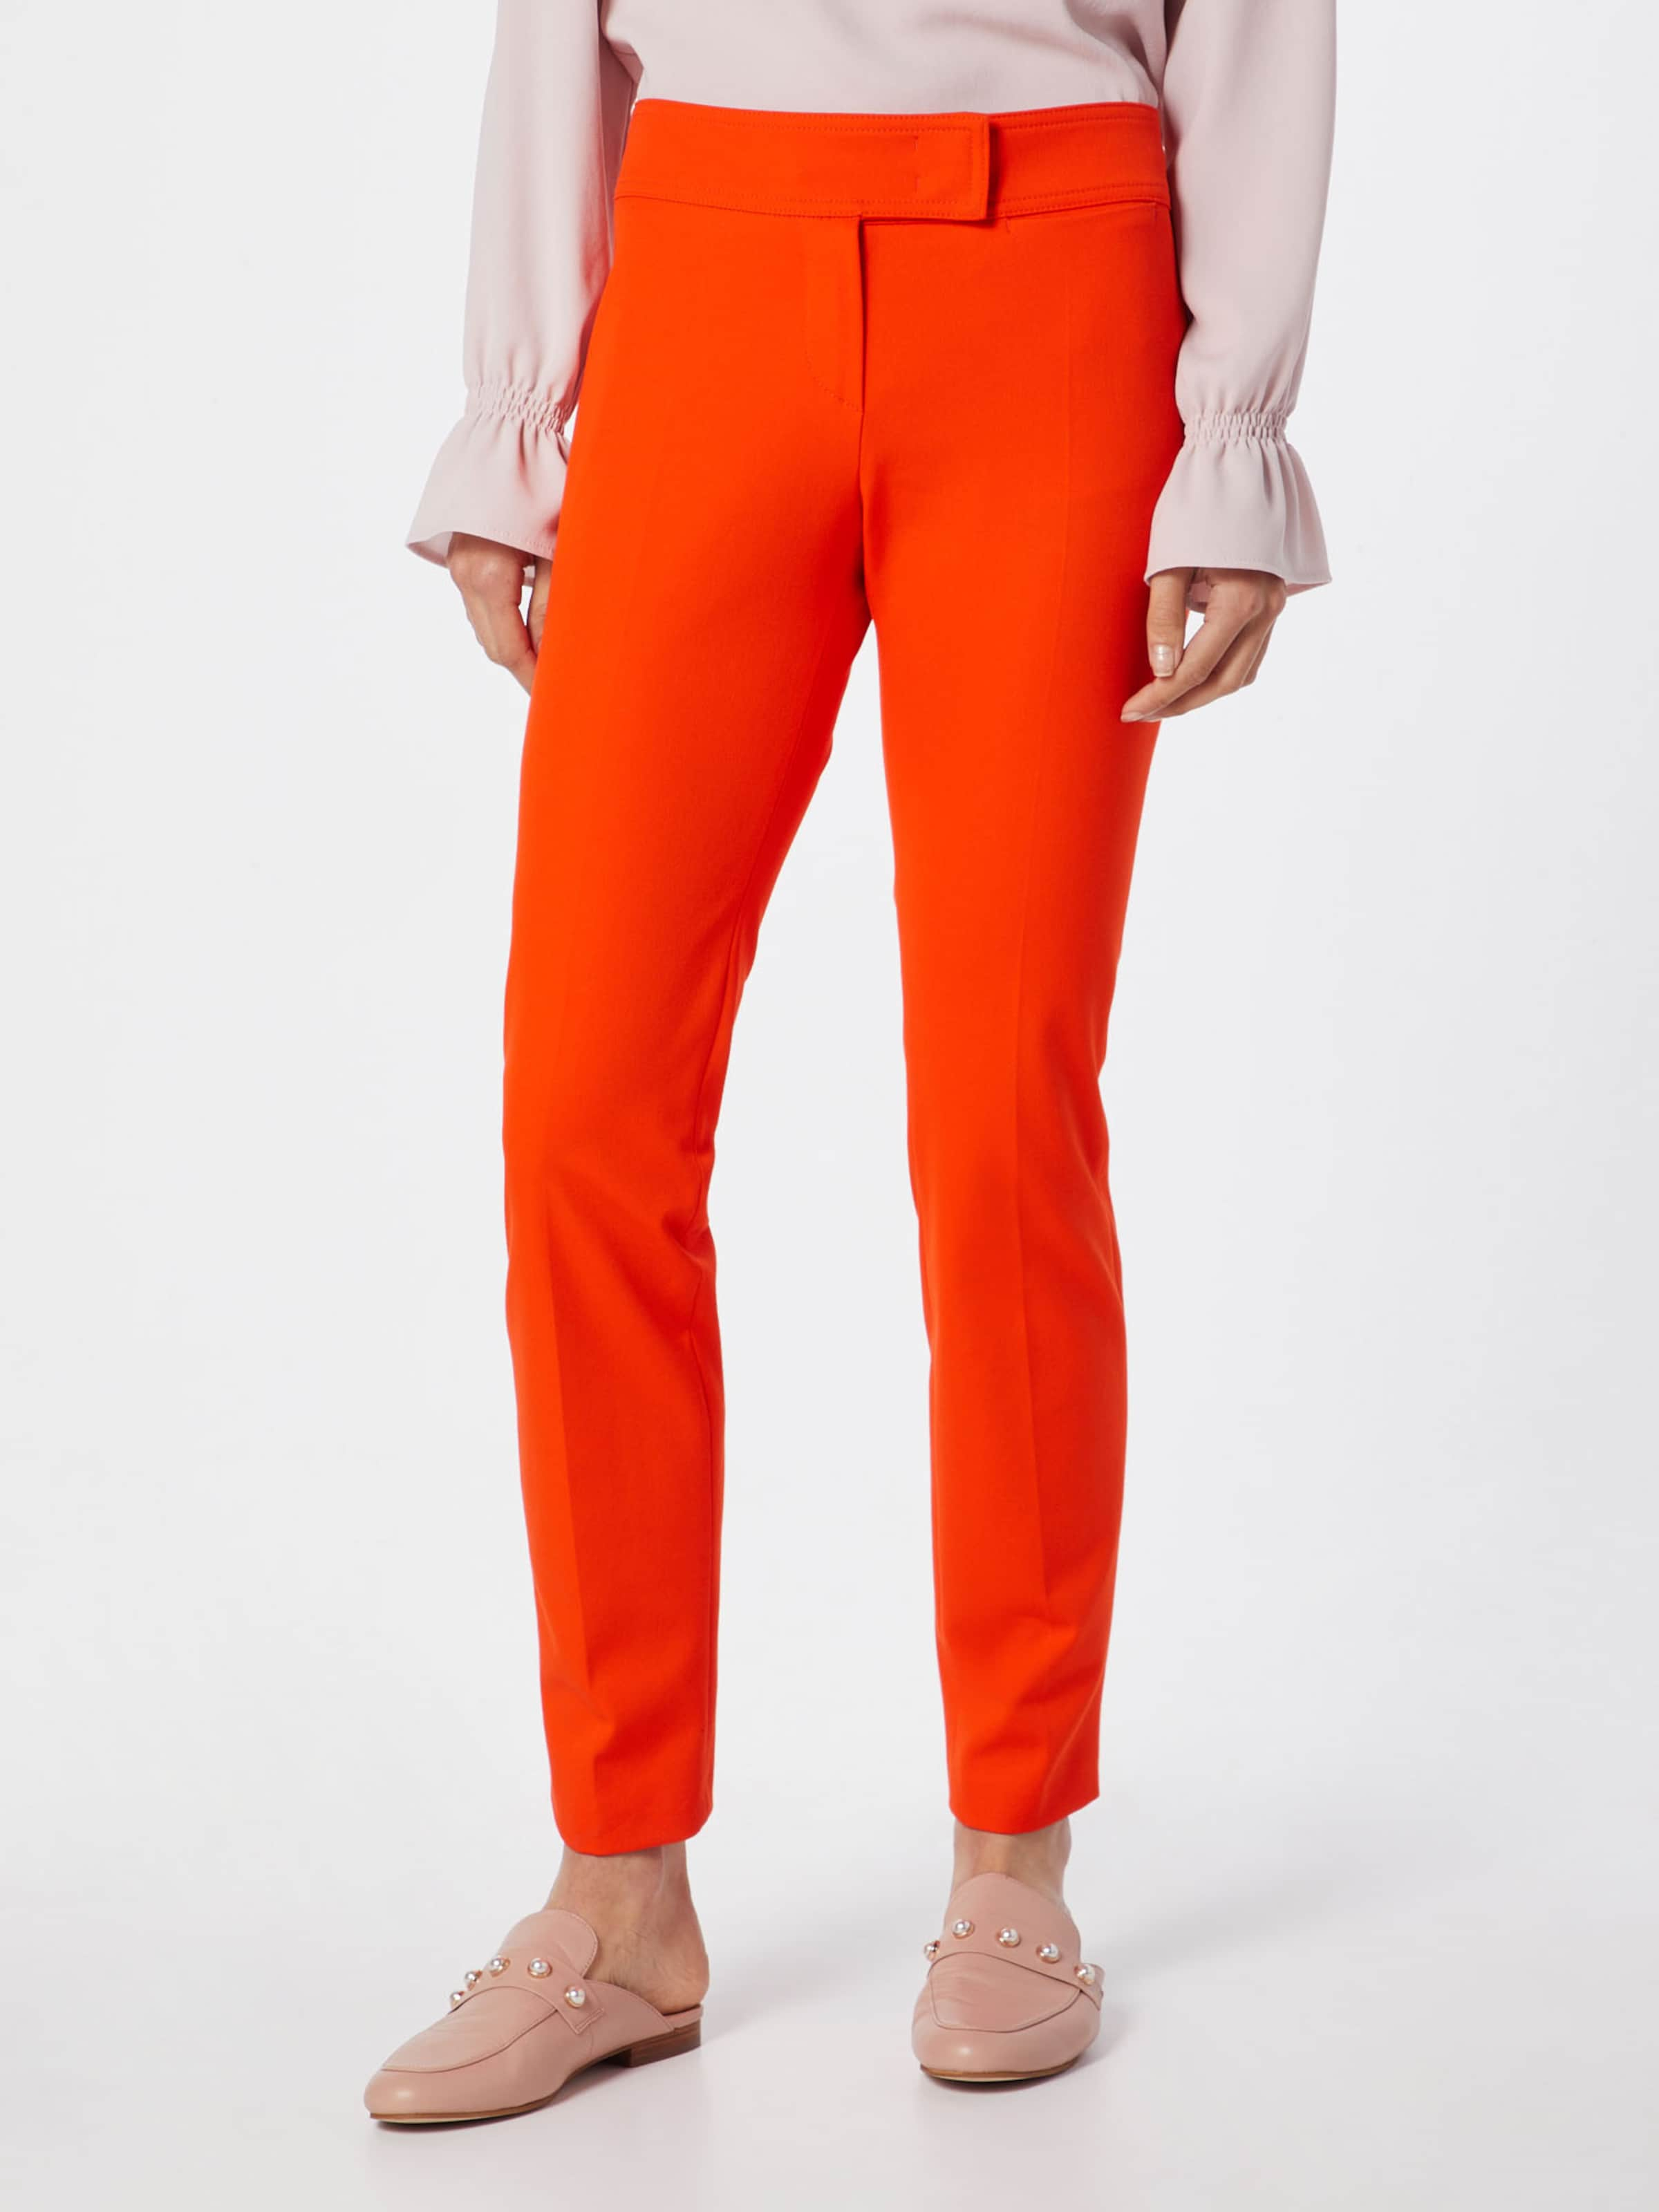 En 'f012s' Pantalon Orange René Lezard n0wPXO8Nk